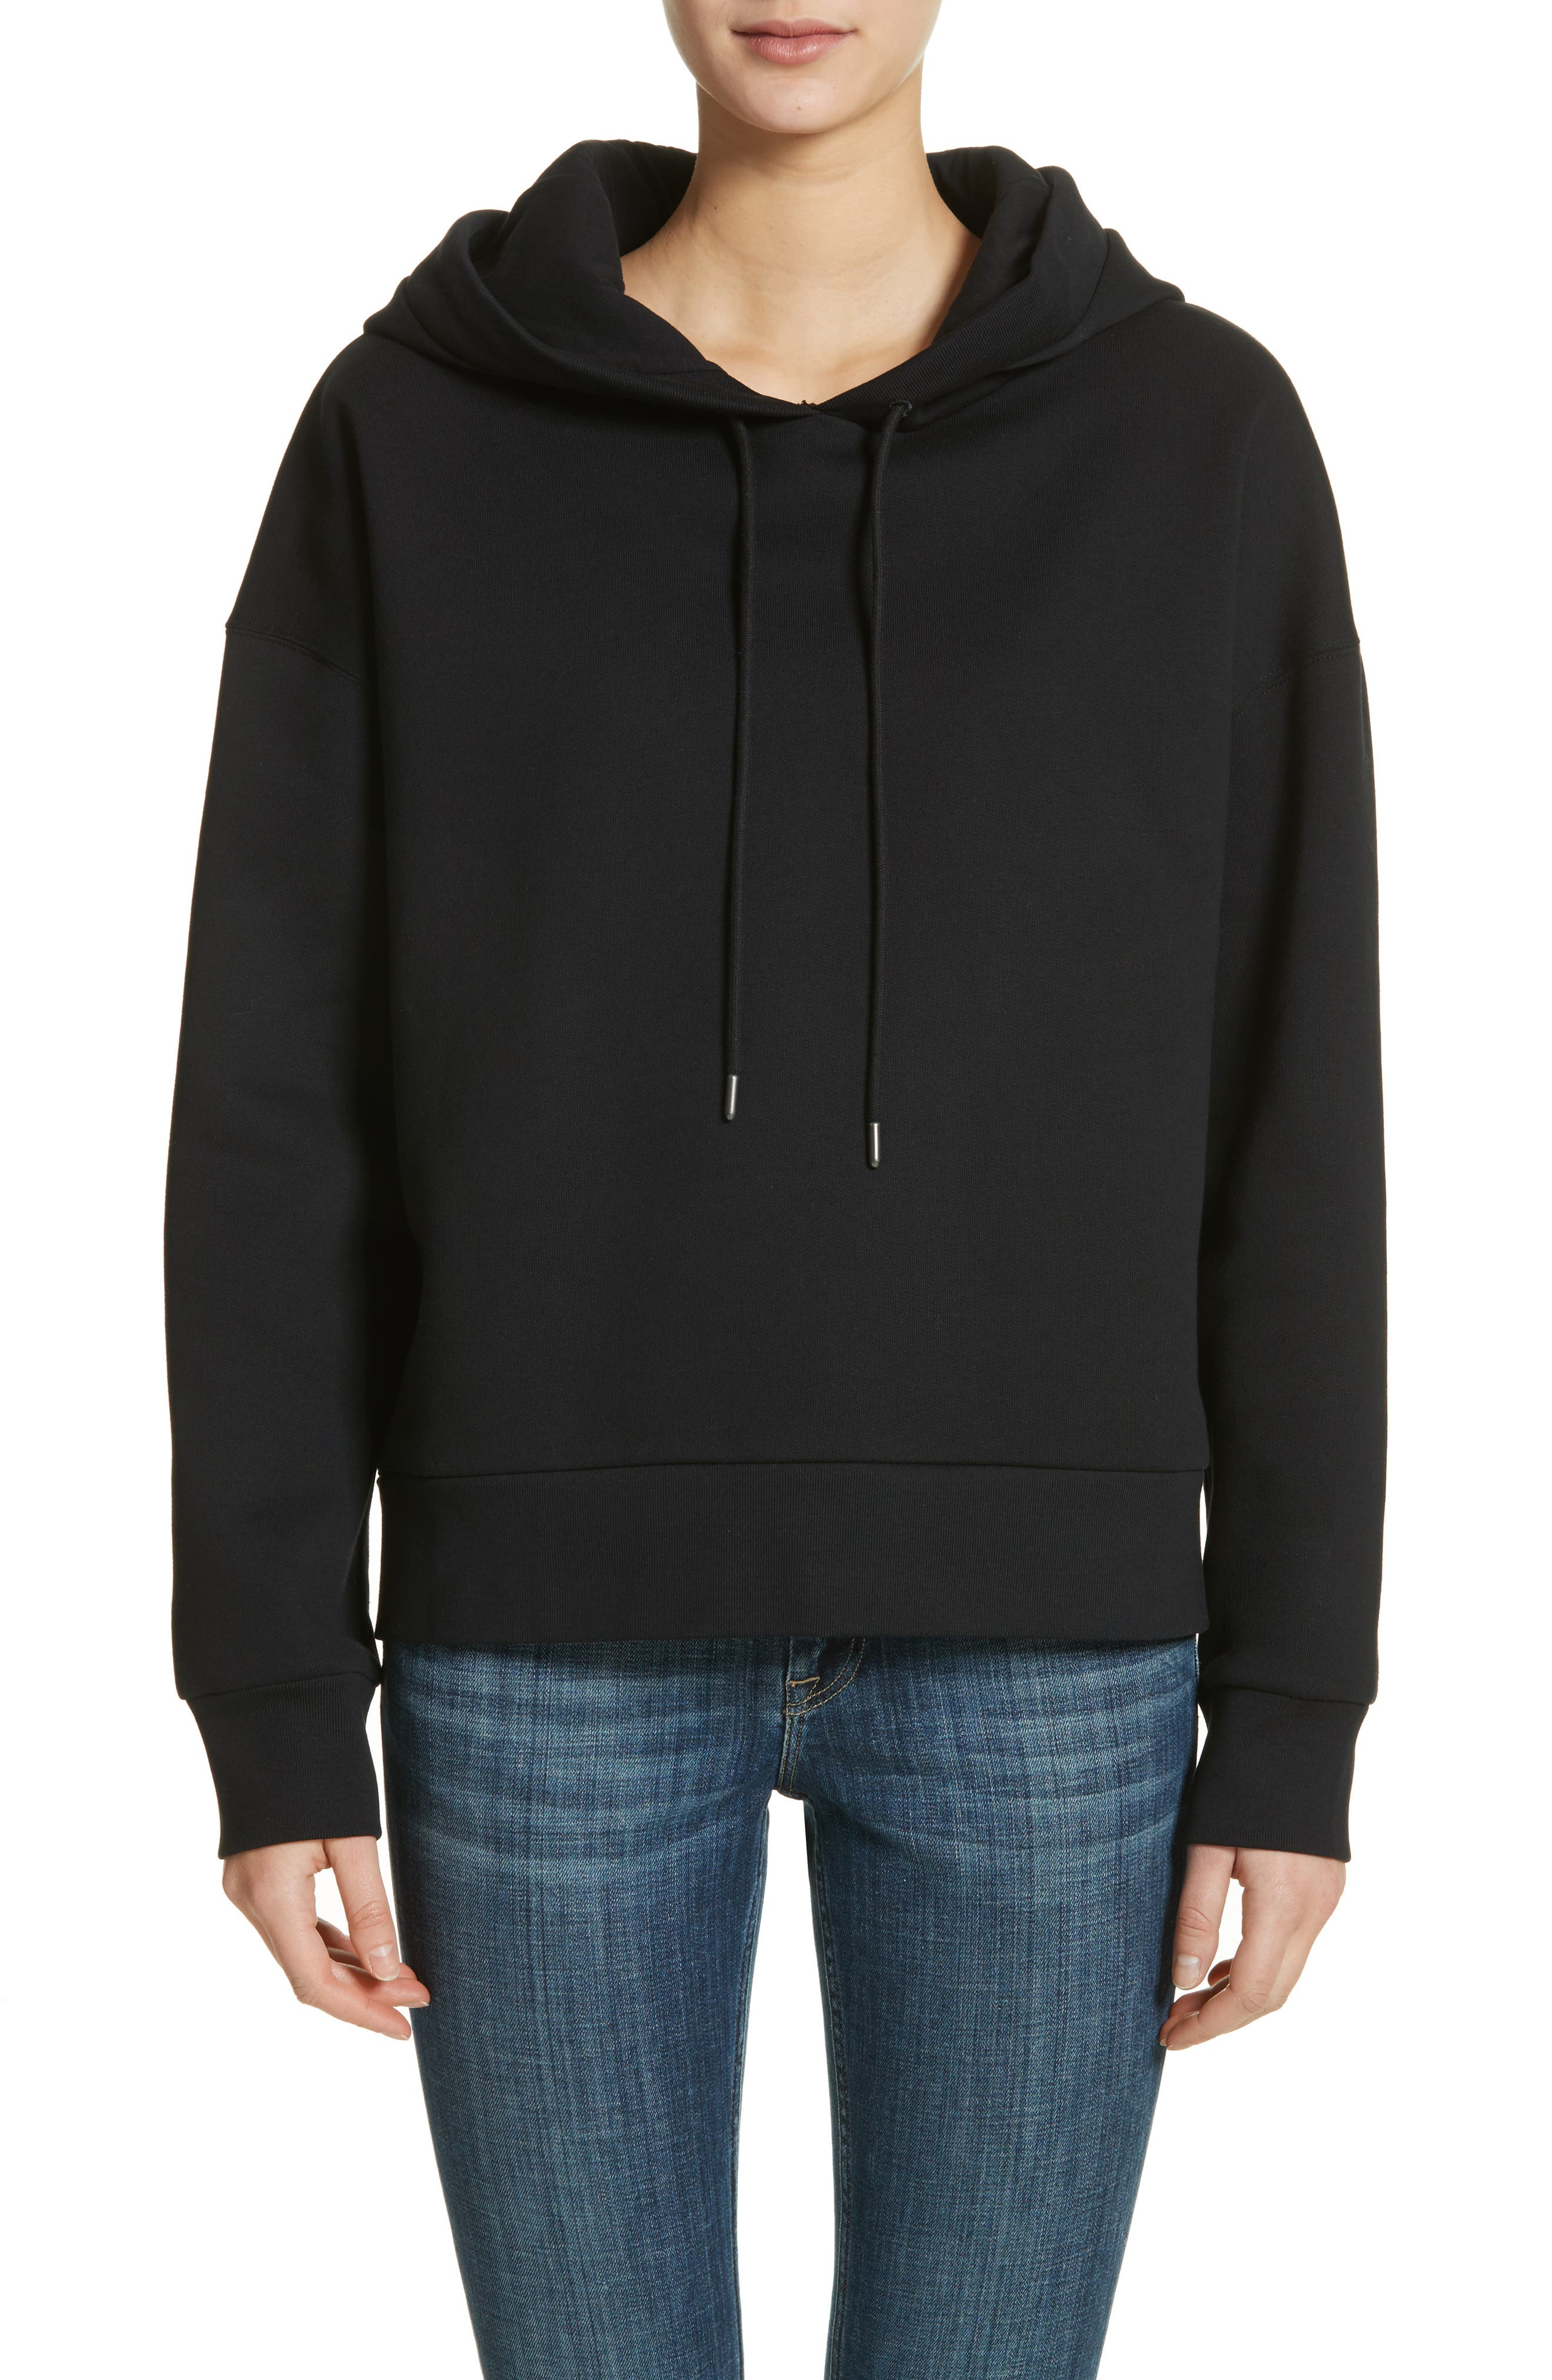 Escara Embroidered Hoodie,                         Main,                         color, 001